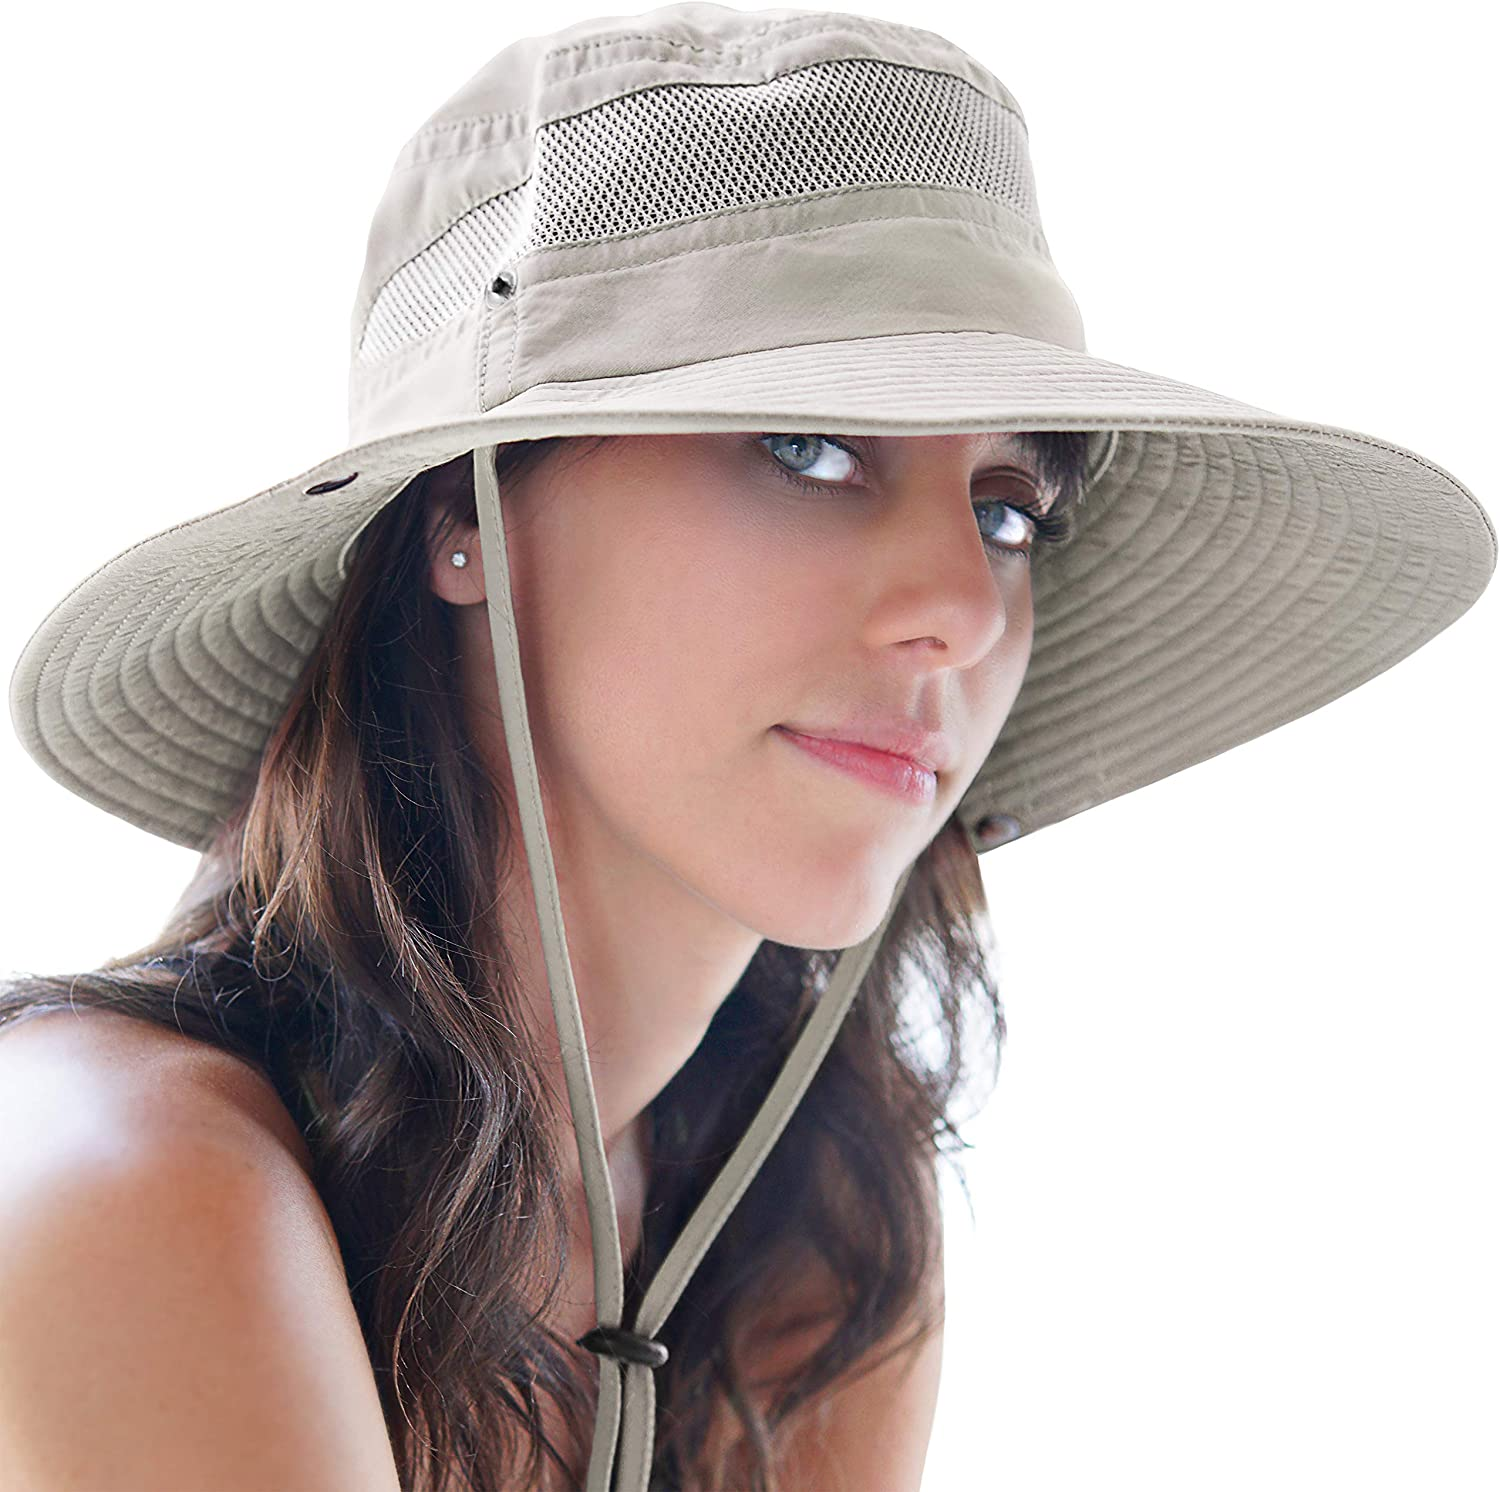 GearTOP Fishing Hat and Safari Cap with Sun Protection | Premium Hats for Men and Women